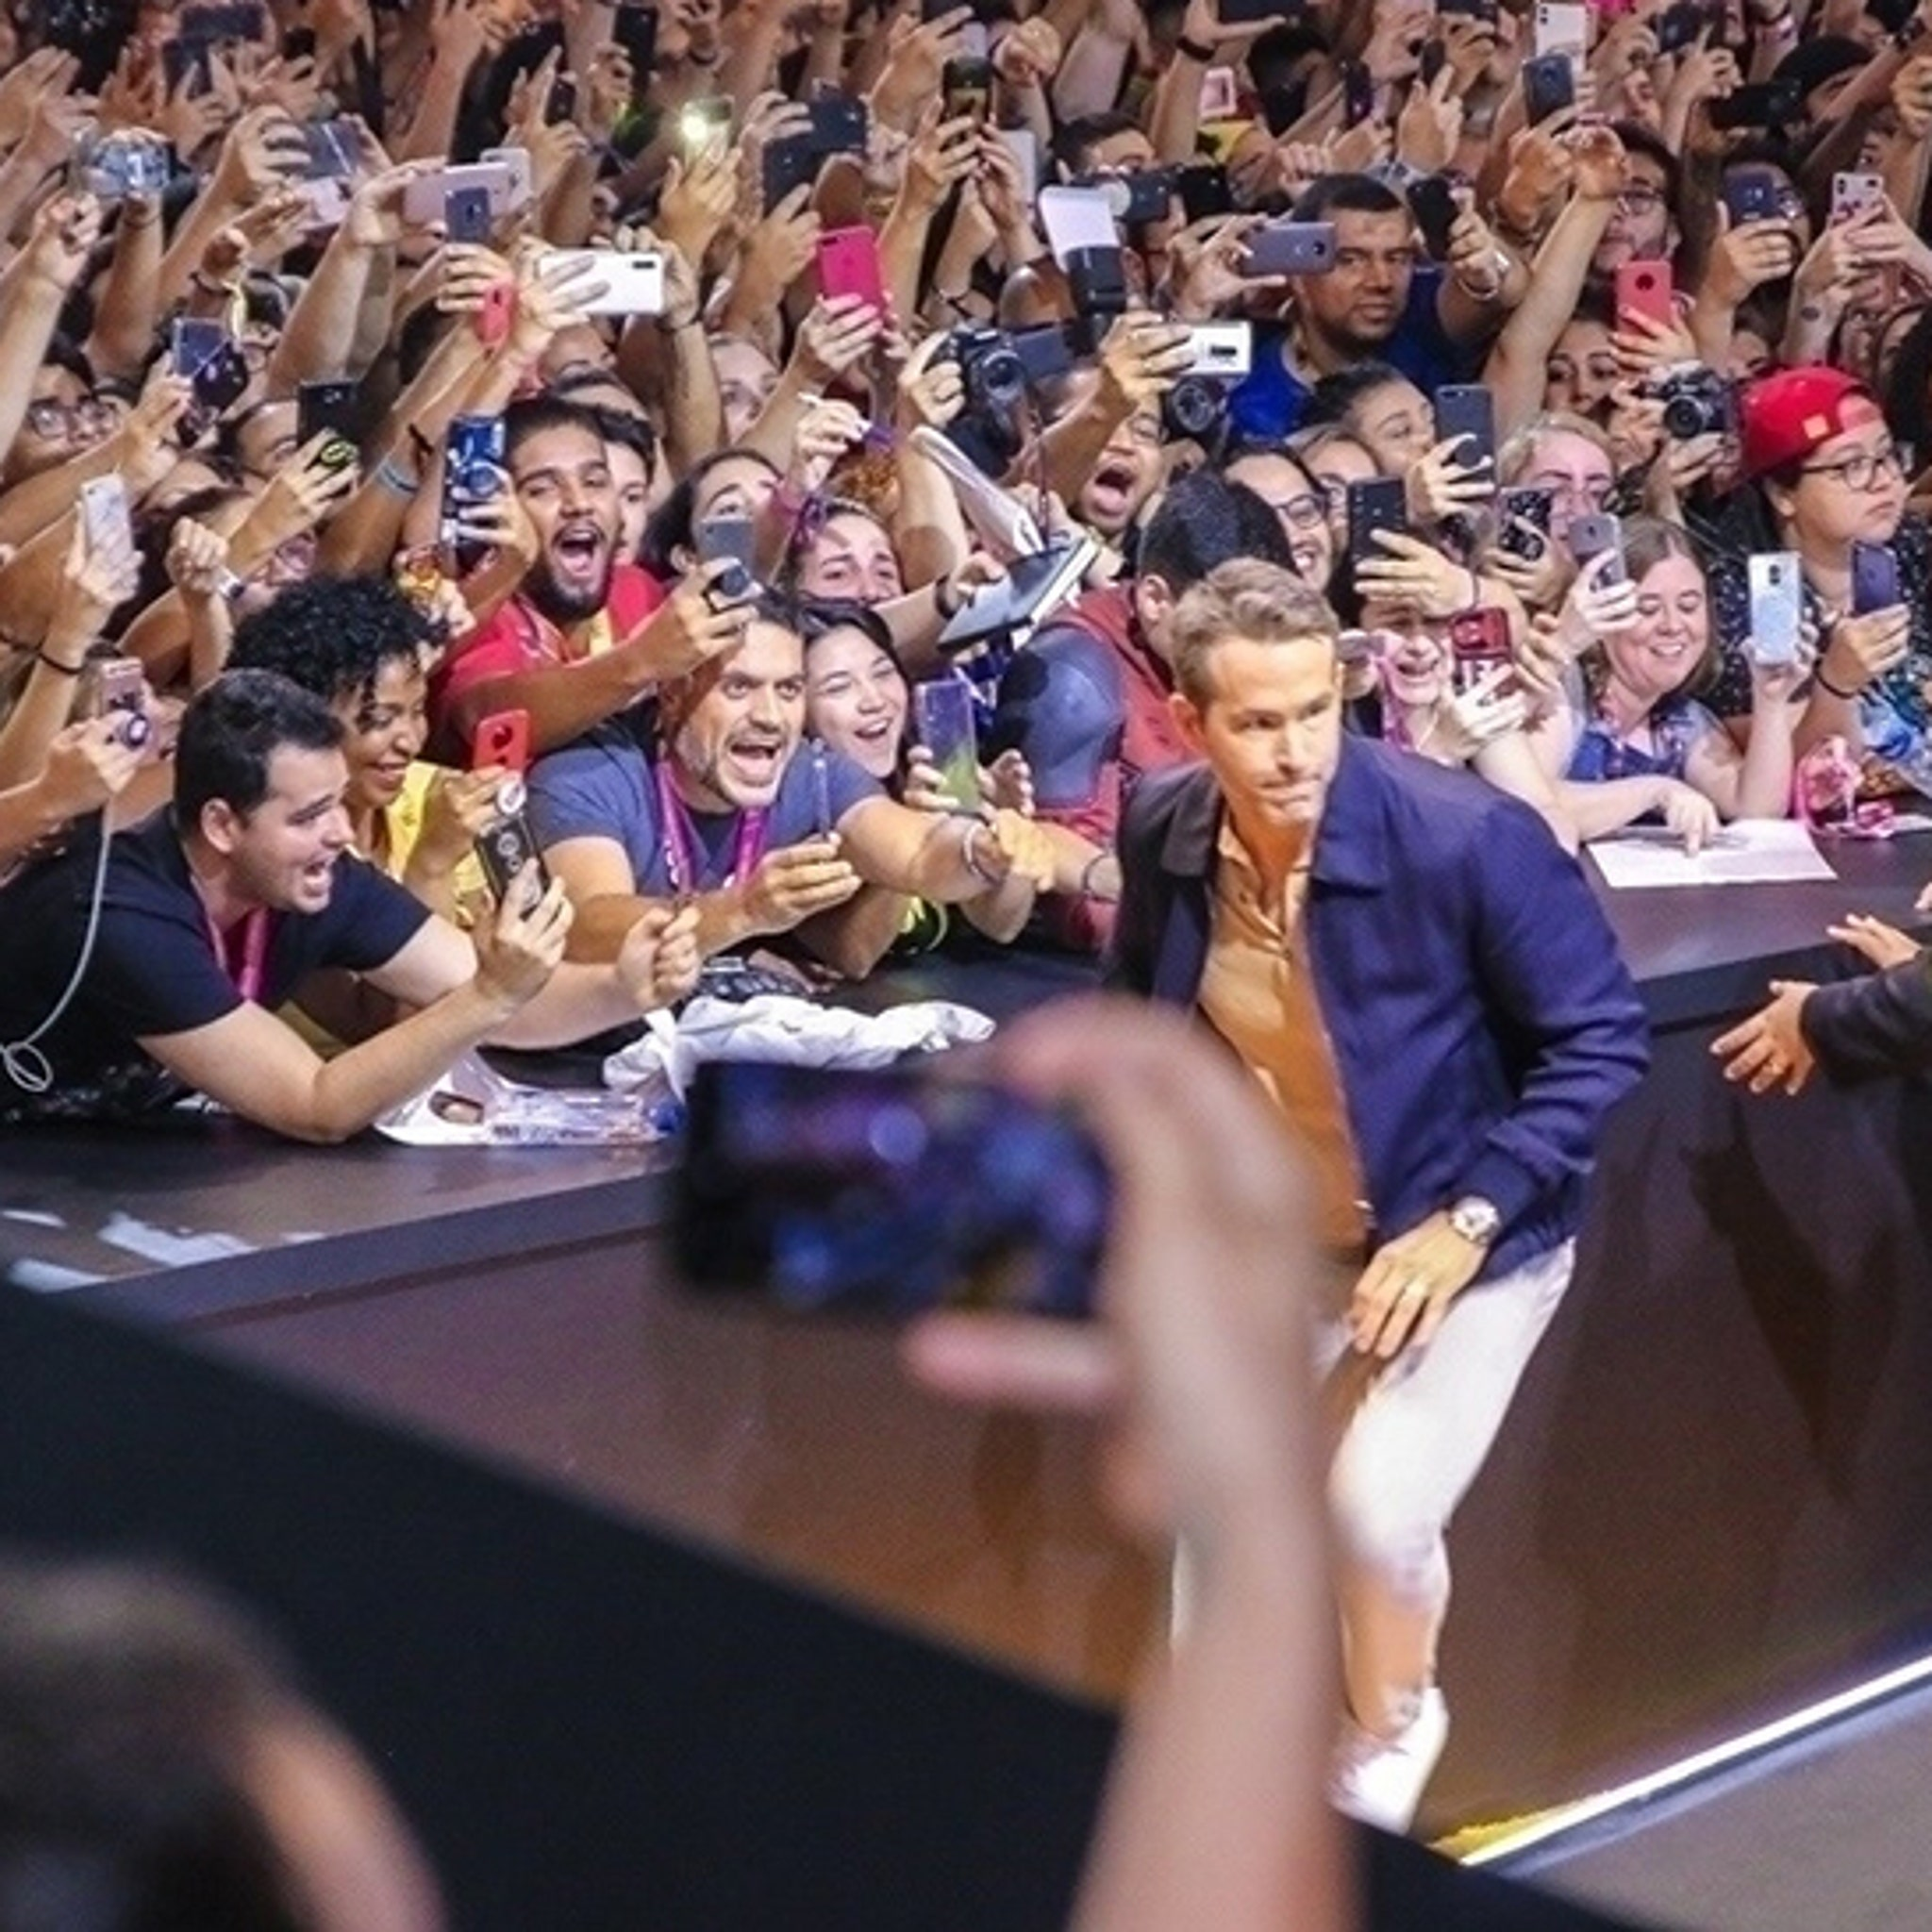 Ryan Reynolds Almost Crushed by Fans Swarming Over Barricade in Brazil